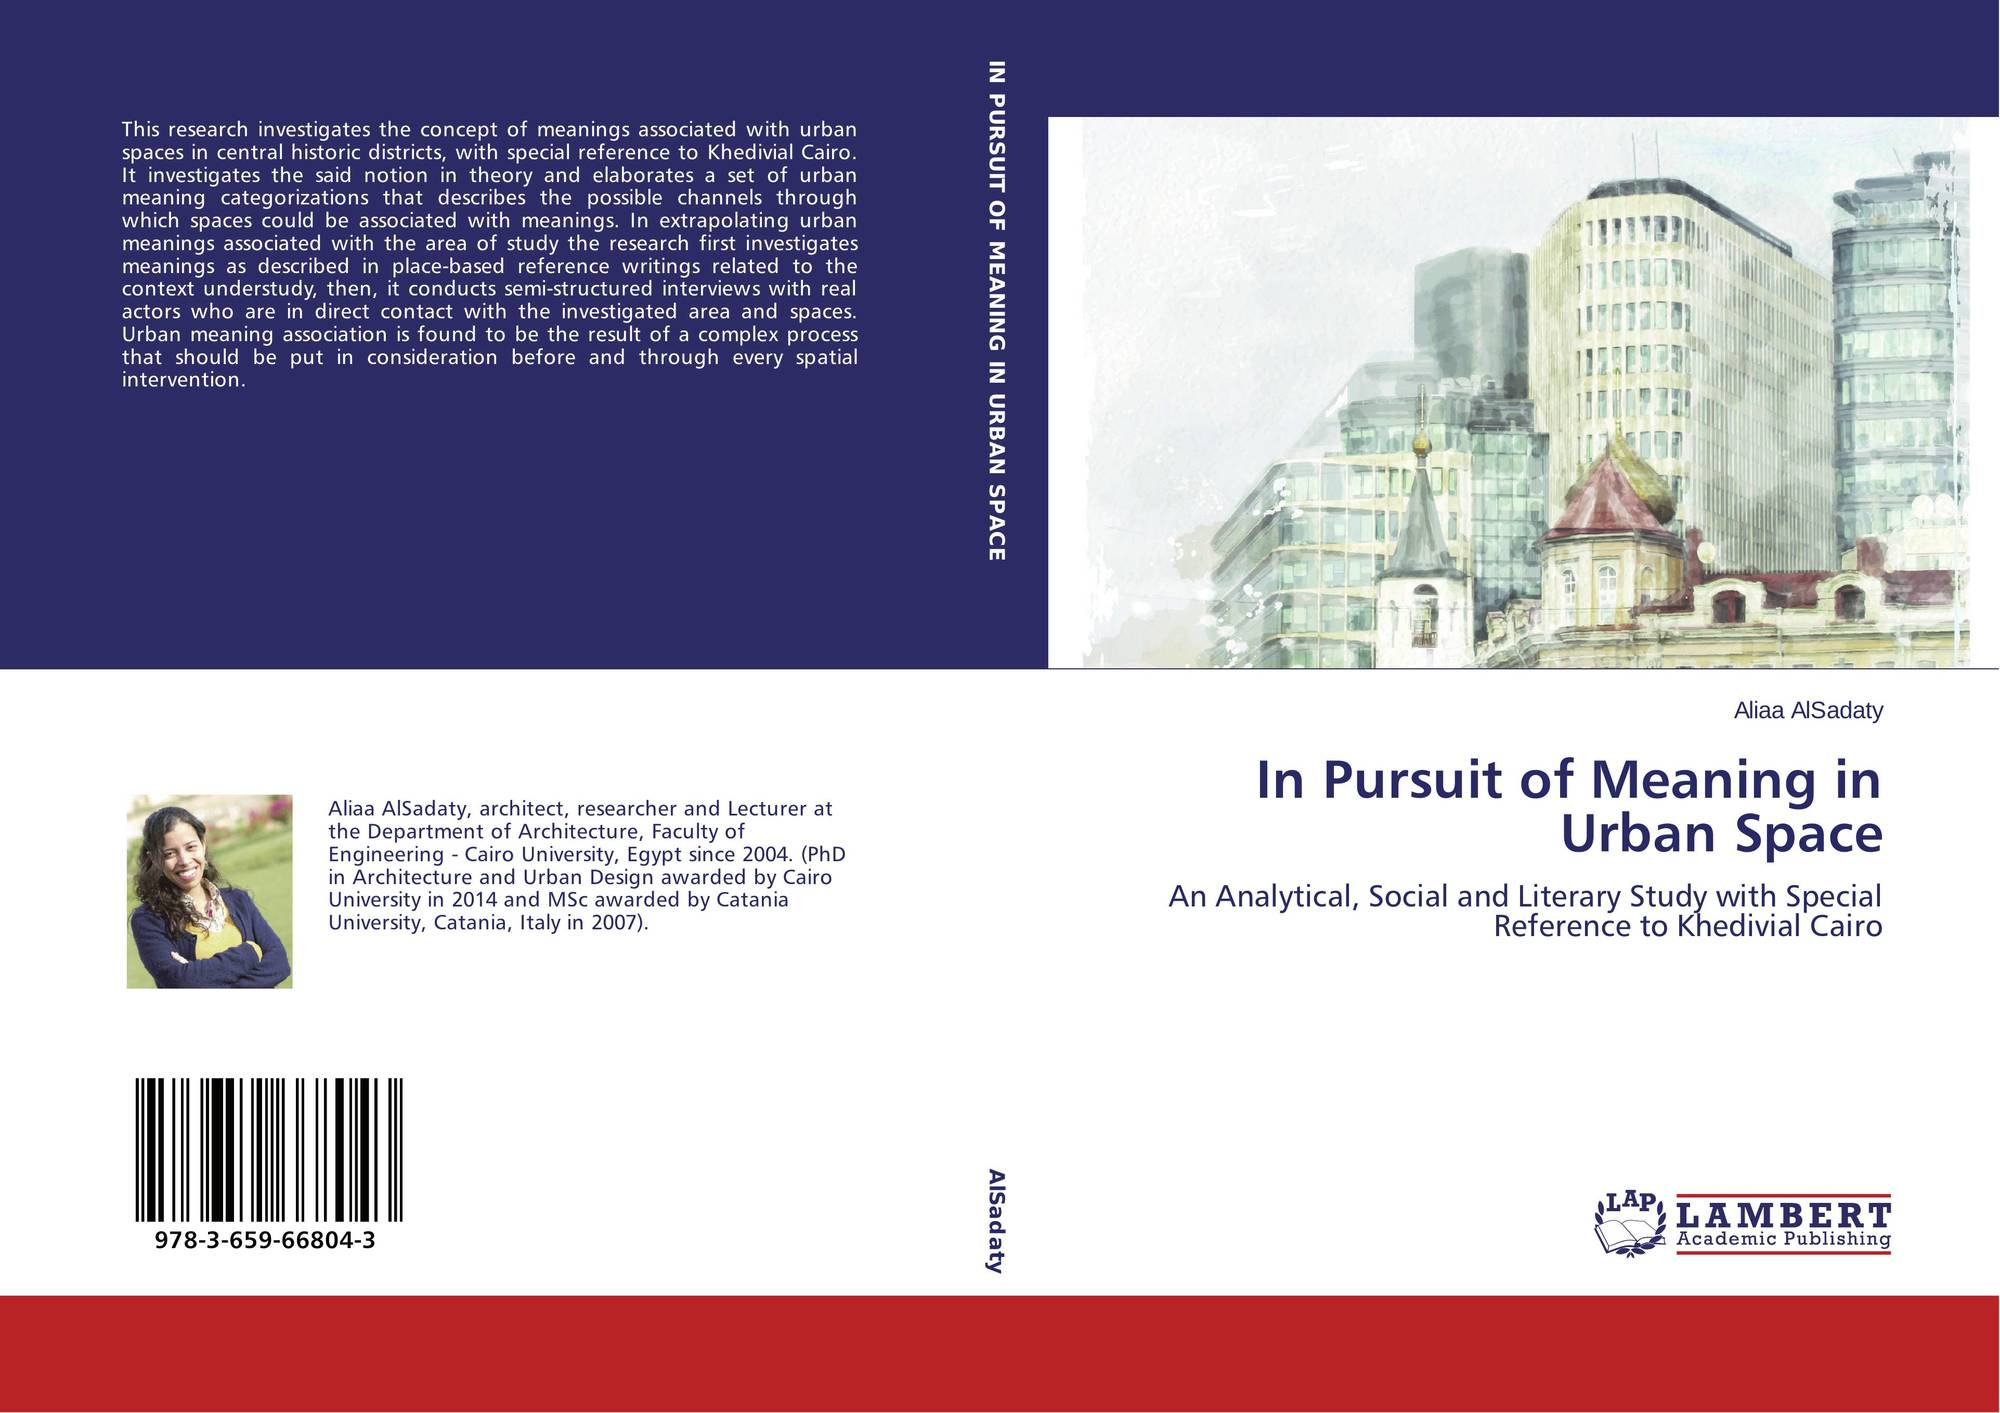 an analysis and an introduction to urbanization in cities Global urban analysis provides the most comprehensive investigation of such connections that has ever been undertaken based on a sophisticated theorization of the global urban system, well-crafted methodological tools and an awesome trove of empirical data, this book is a truly path-breaking analysis of globalized urbanization.